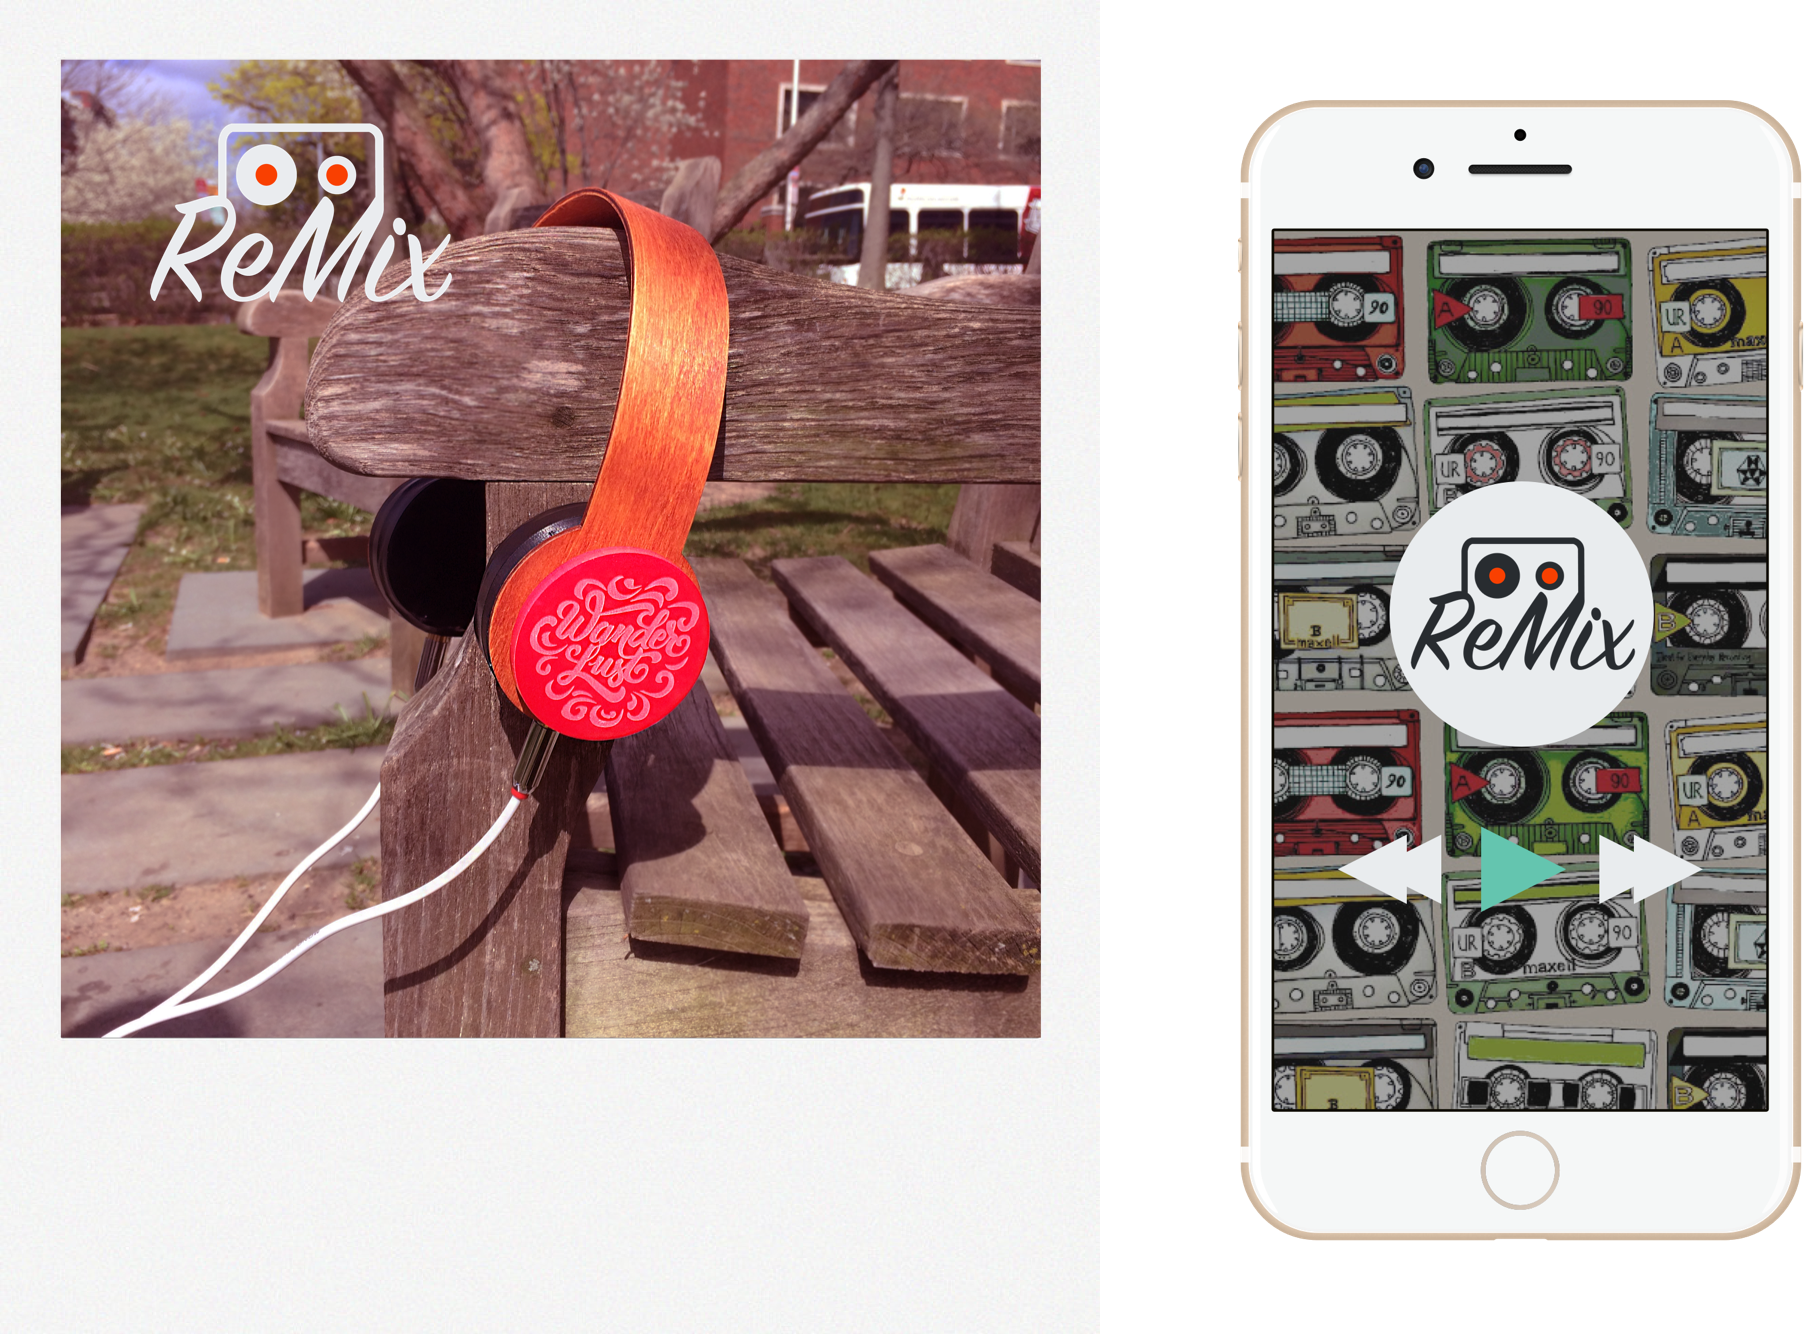 Headphones accompanied by a music app that channels mixtape culture to personalize the way we discover and share music.